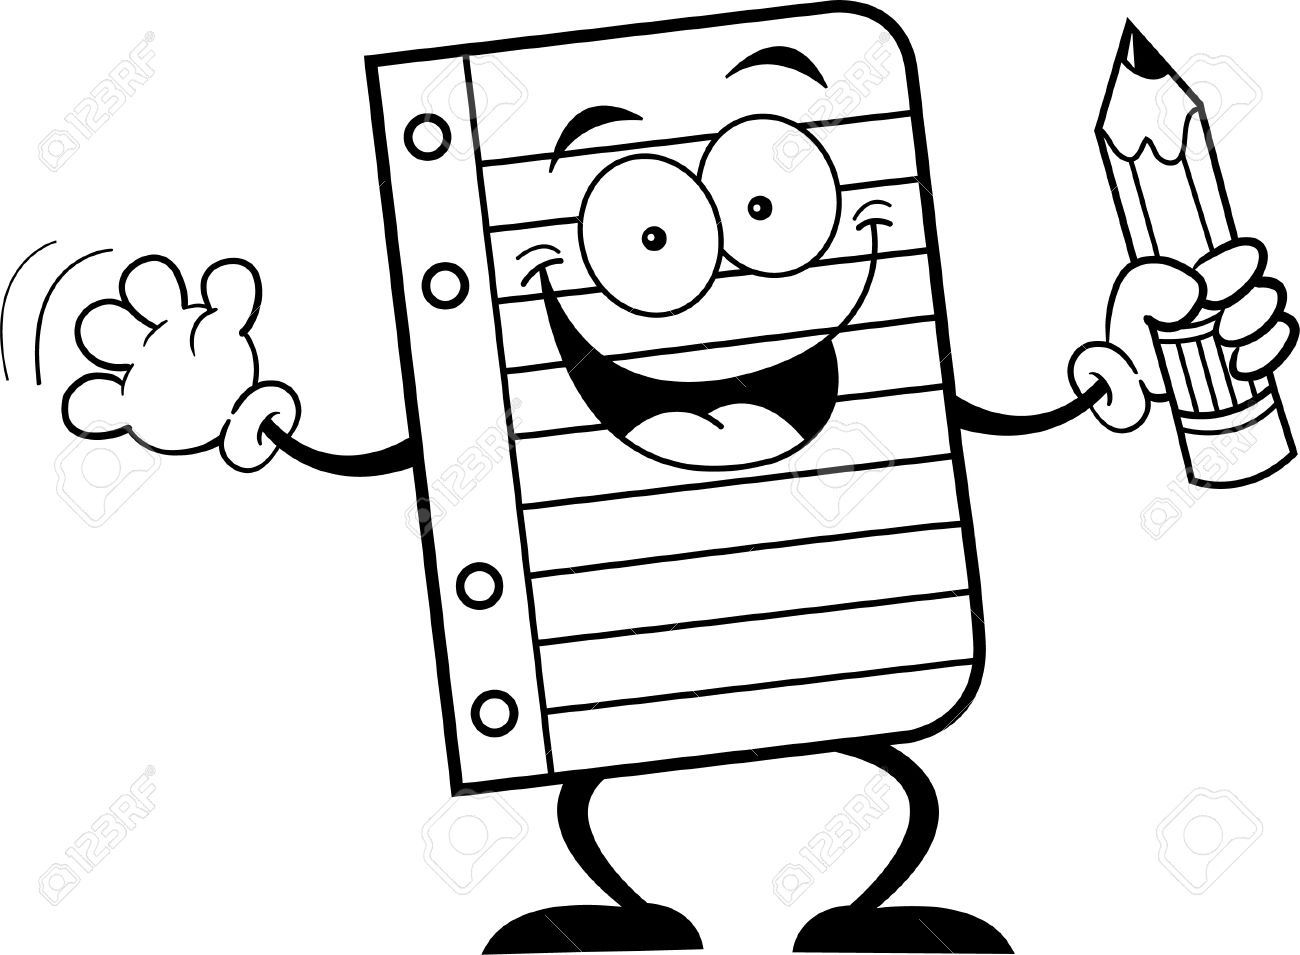 Simple pencil clipart black and white graphic transparent Black And White Illustration Of A Notebook Paper Holding A ... graphic transparent